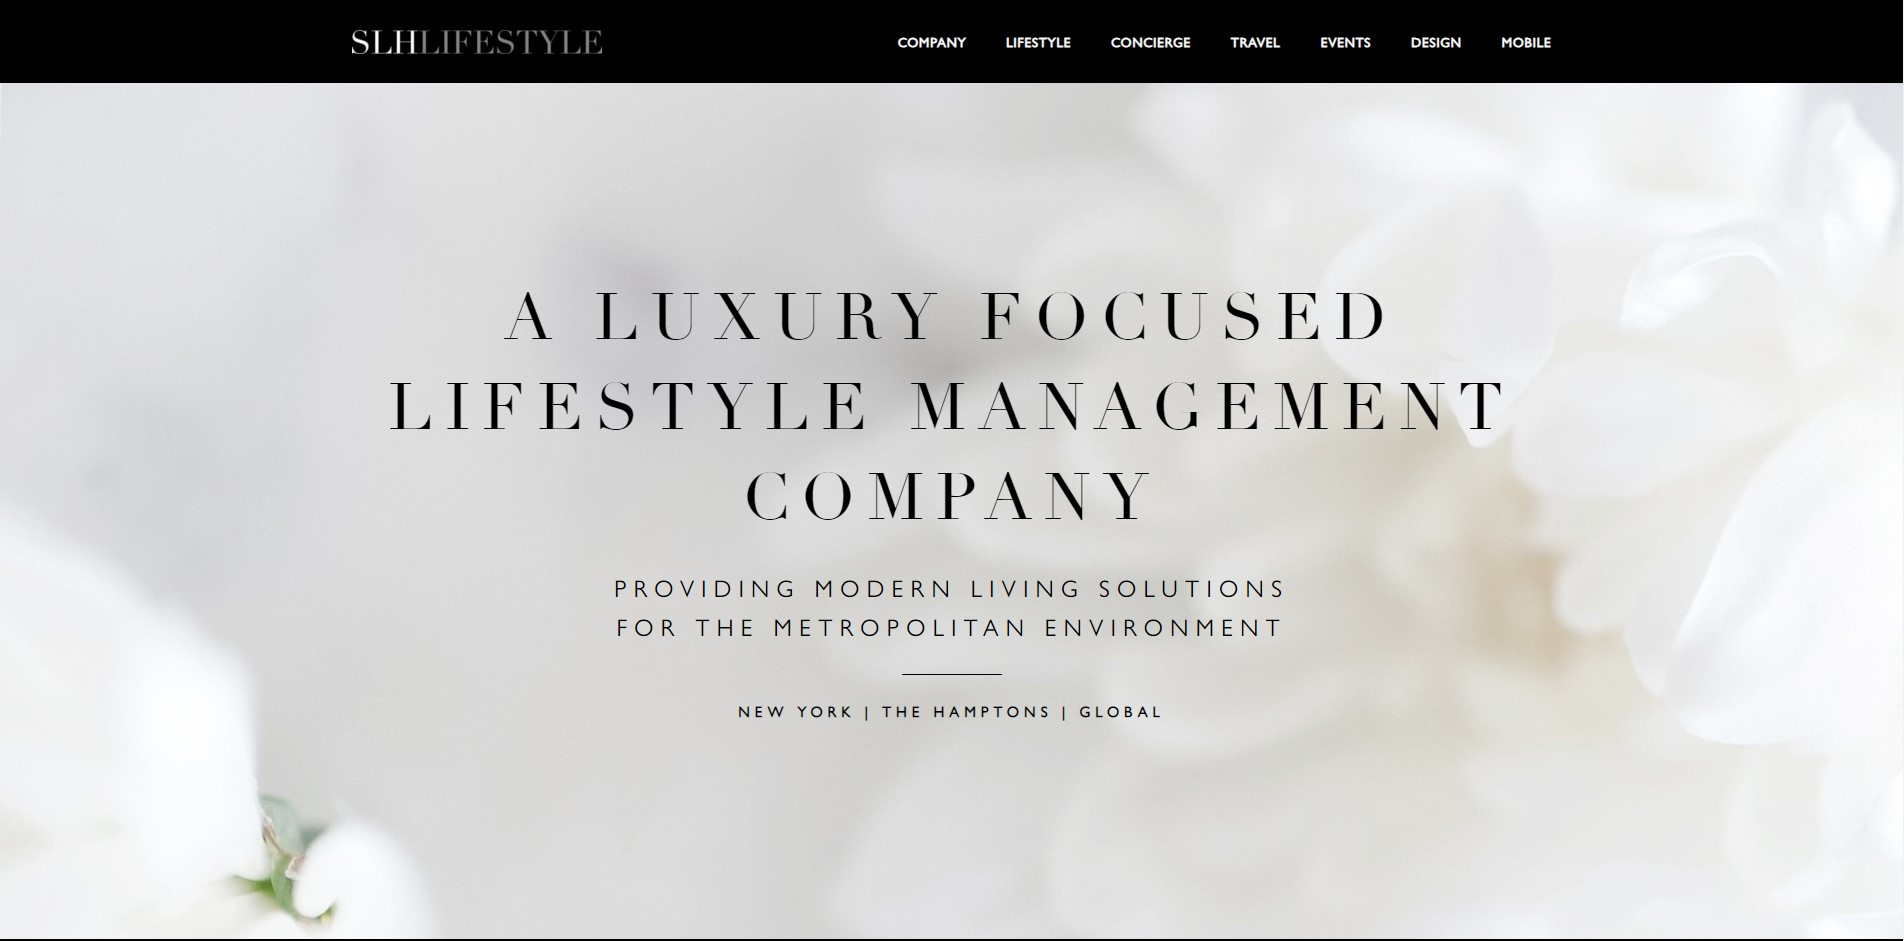 SLHlifestyle lifestyle management nyc